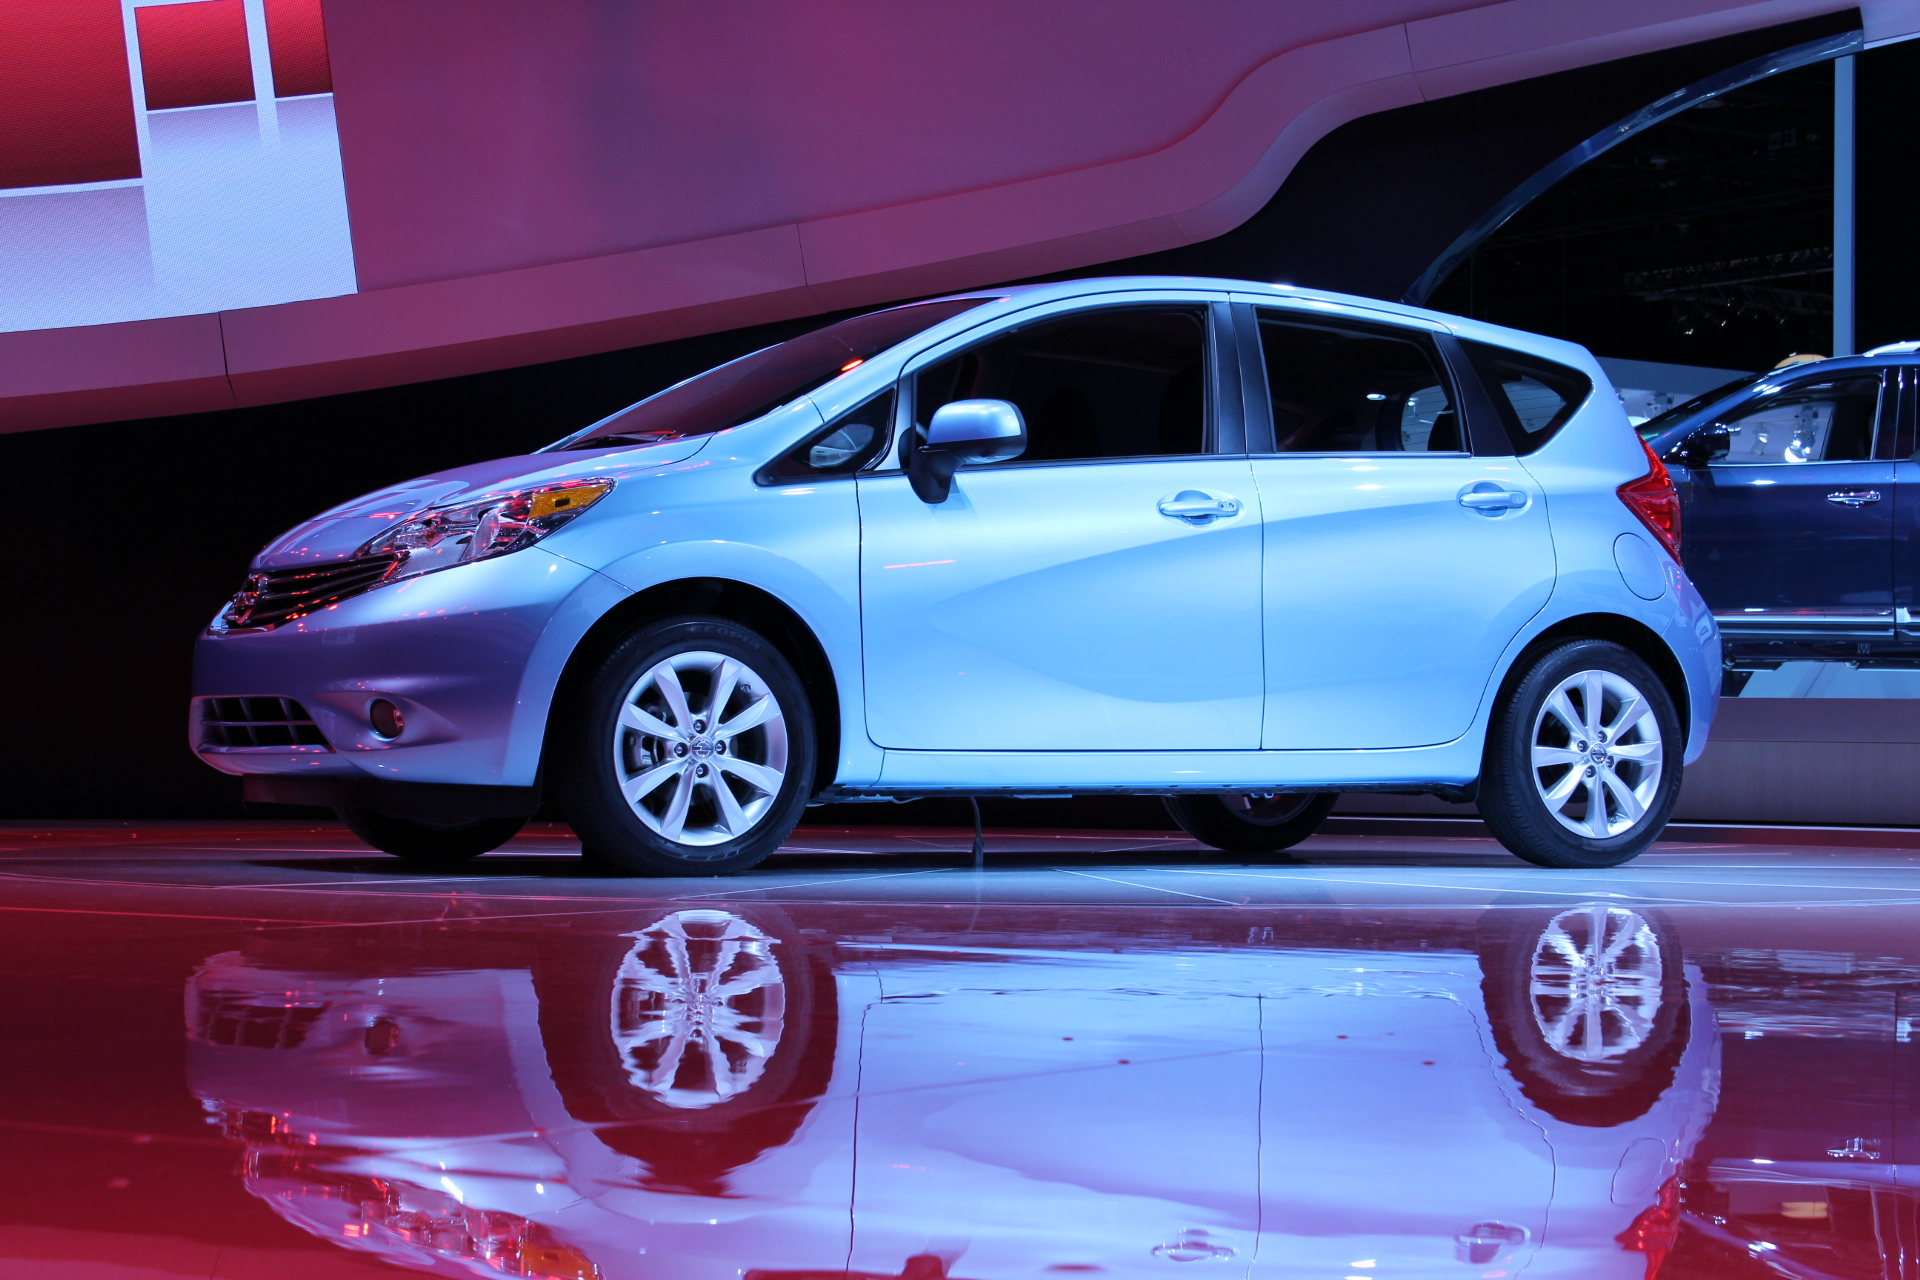 2014 nissan versa note 2013 detroit auto show first photos. Black Bedroom Furniture Sets. Home Design Ideas